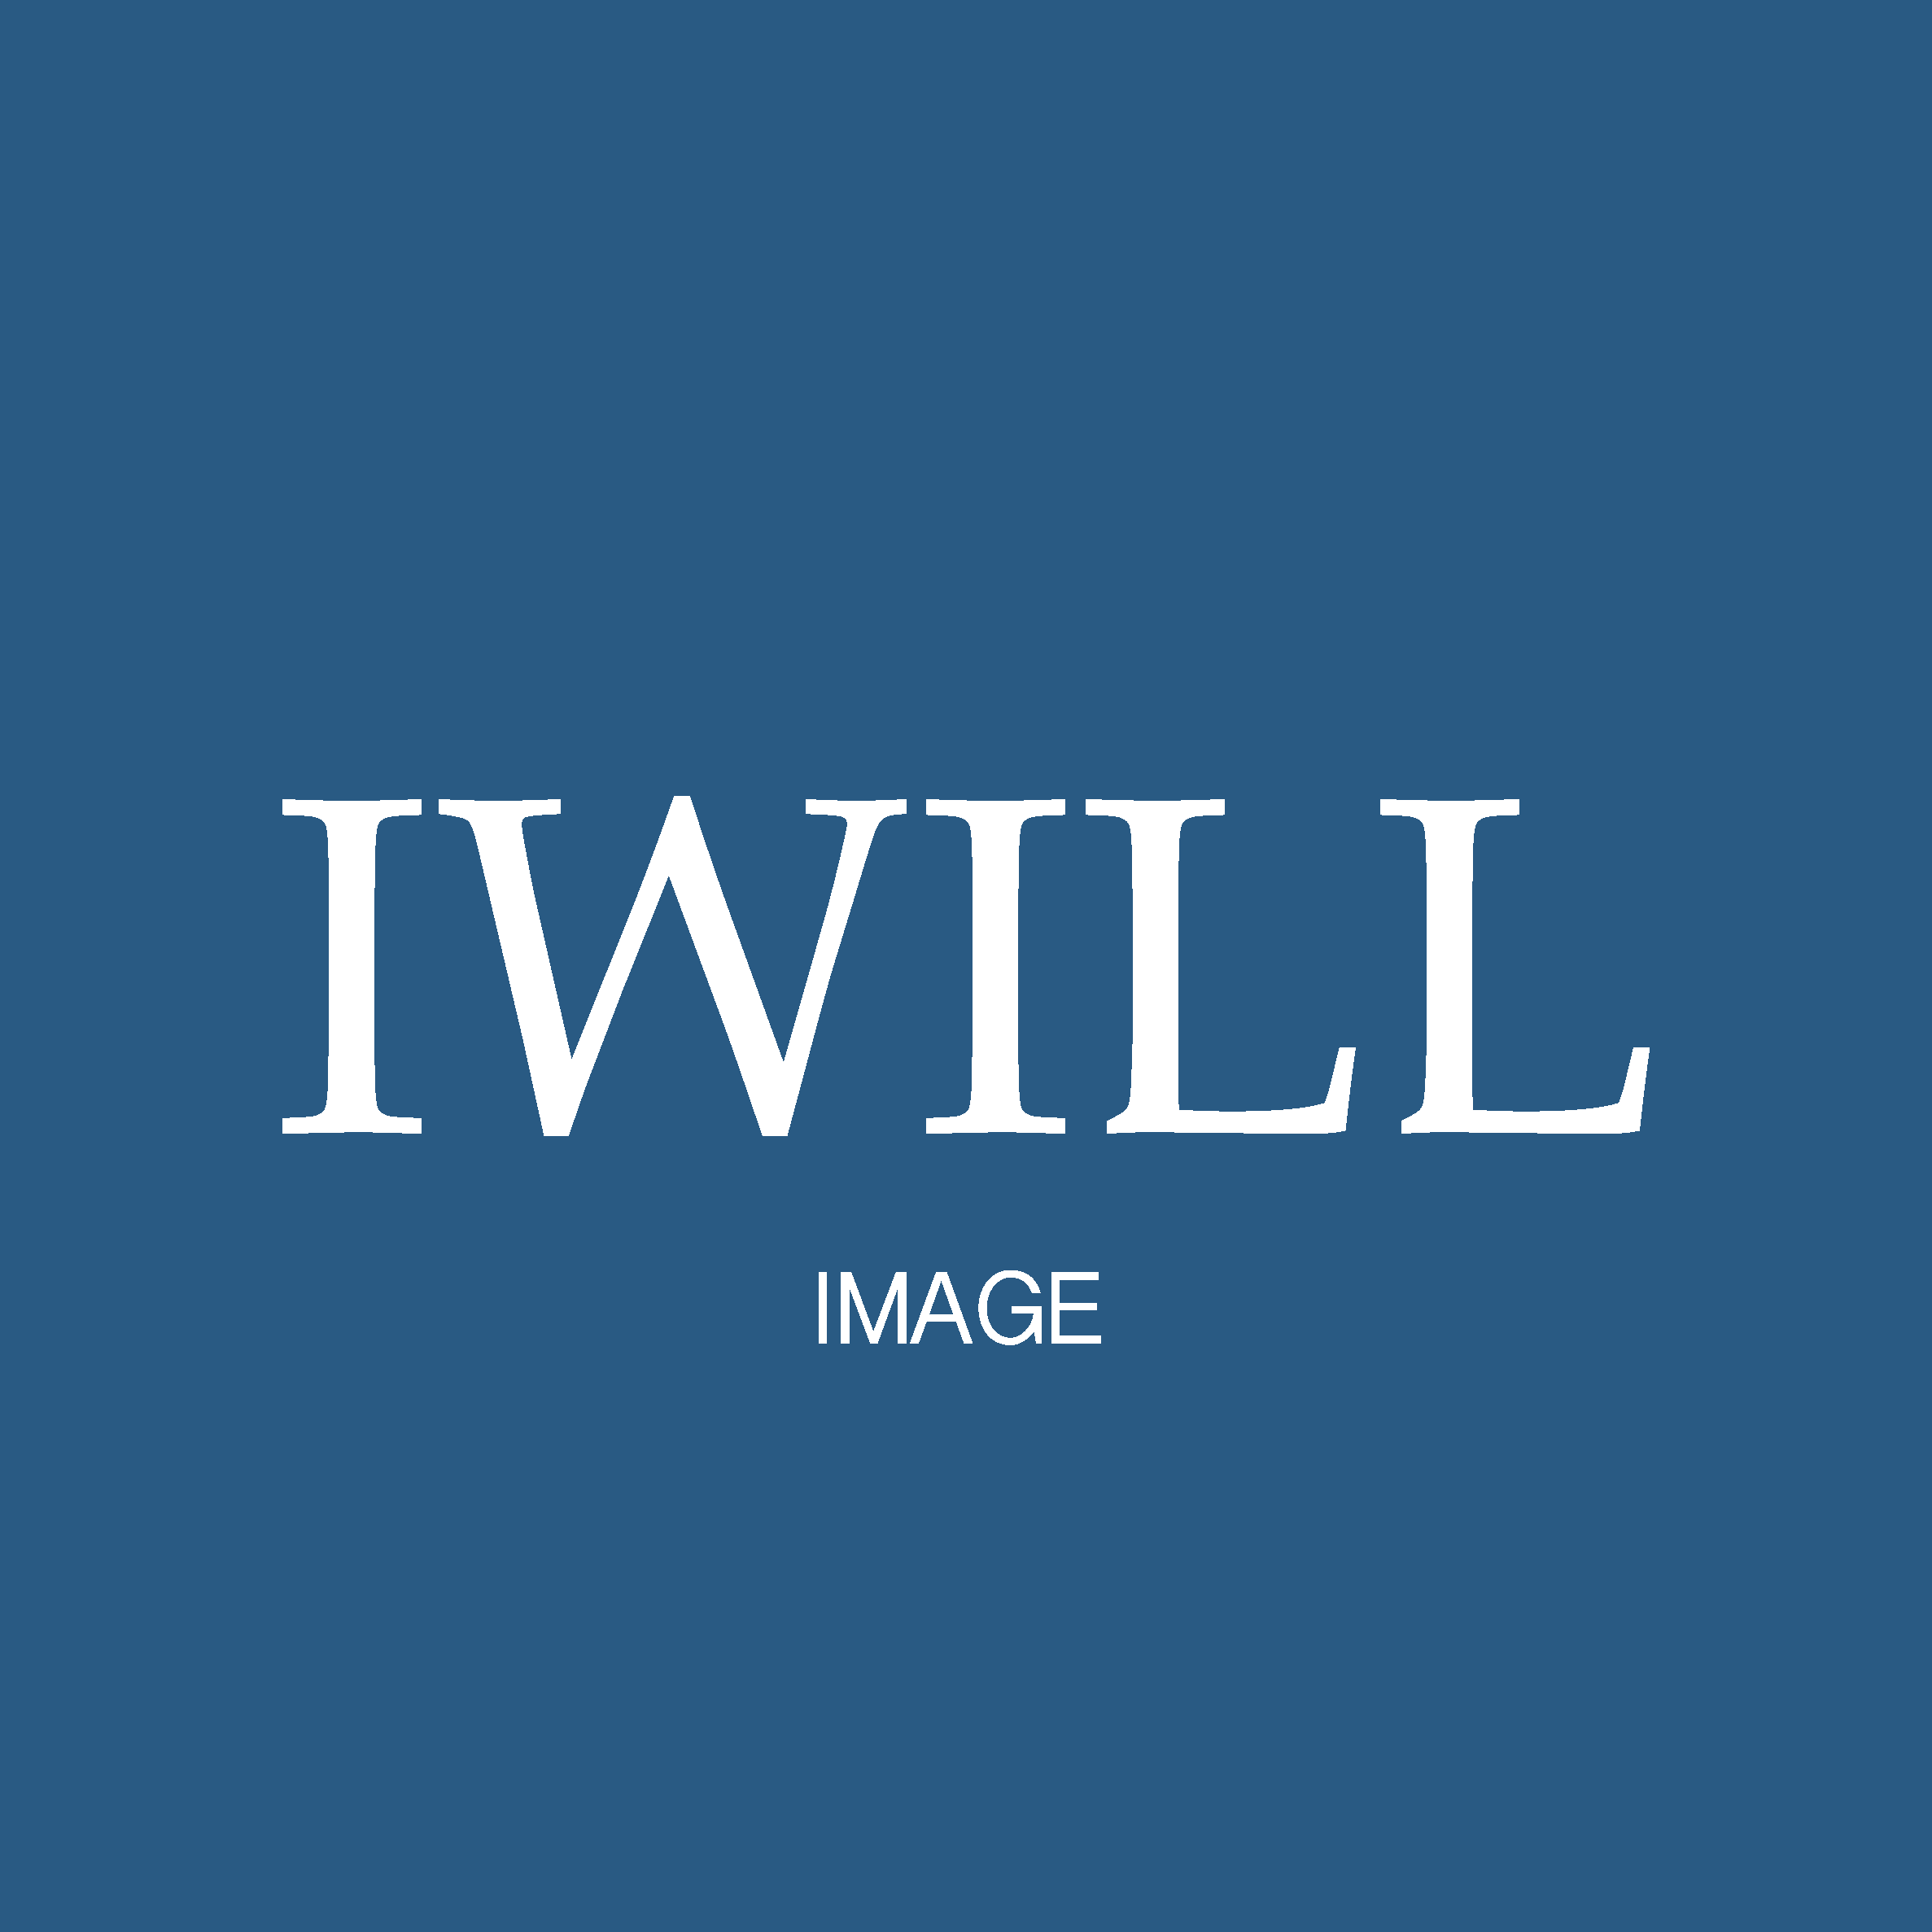 IWILL IMAGE